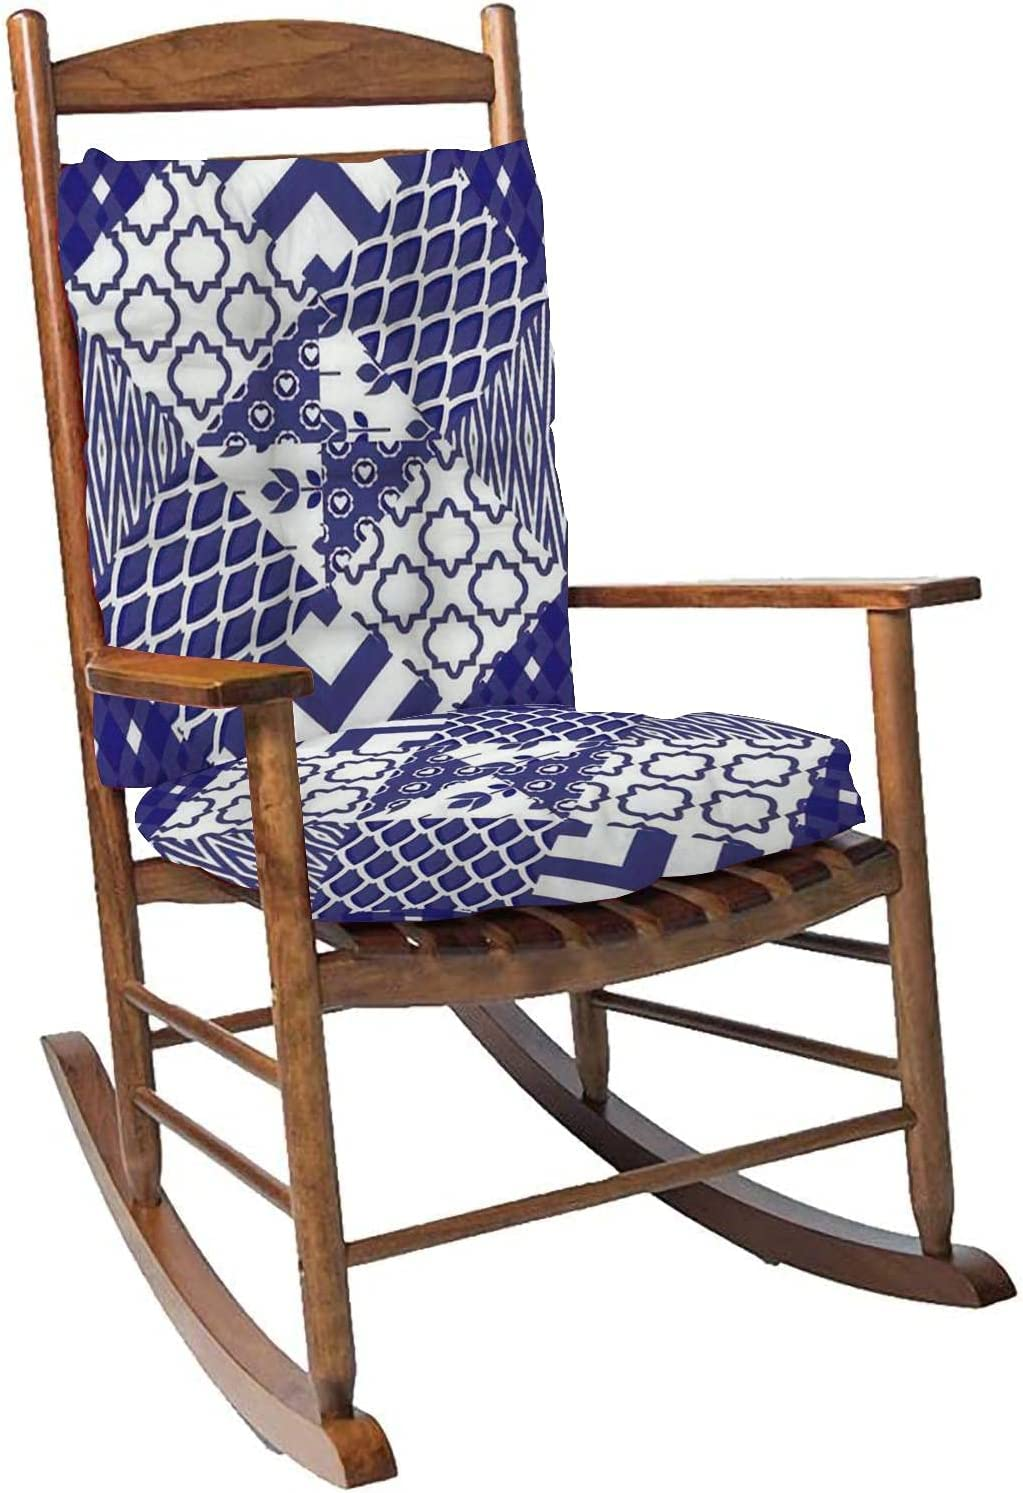 Rocking Chair Cushion Pad Set with Ties Patchwork Quilt Pattern Tiles Blue Indigo and White Portuguese Overstuffed Thickened Patio Chair Cushions Indoor Outdoor Furniture Seating 2 Pieces